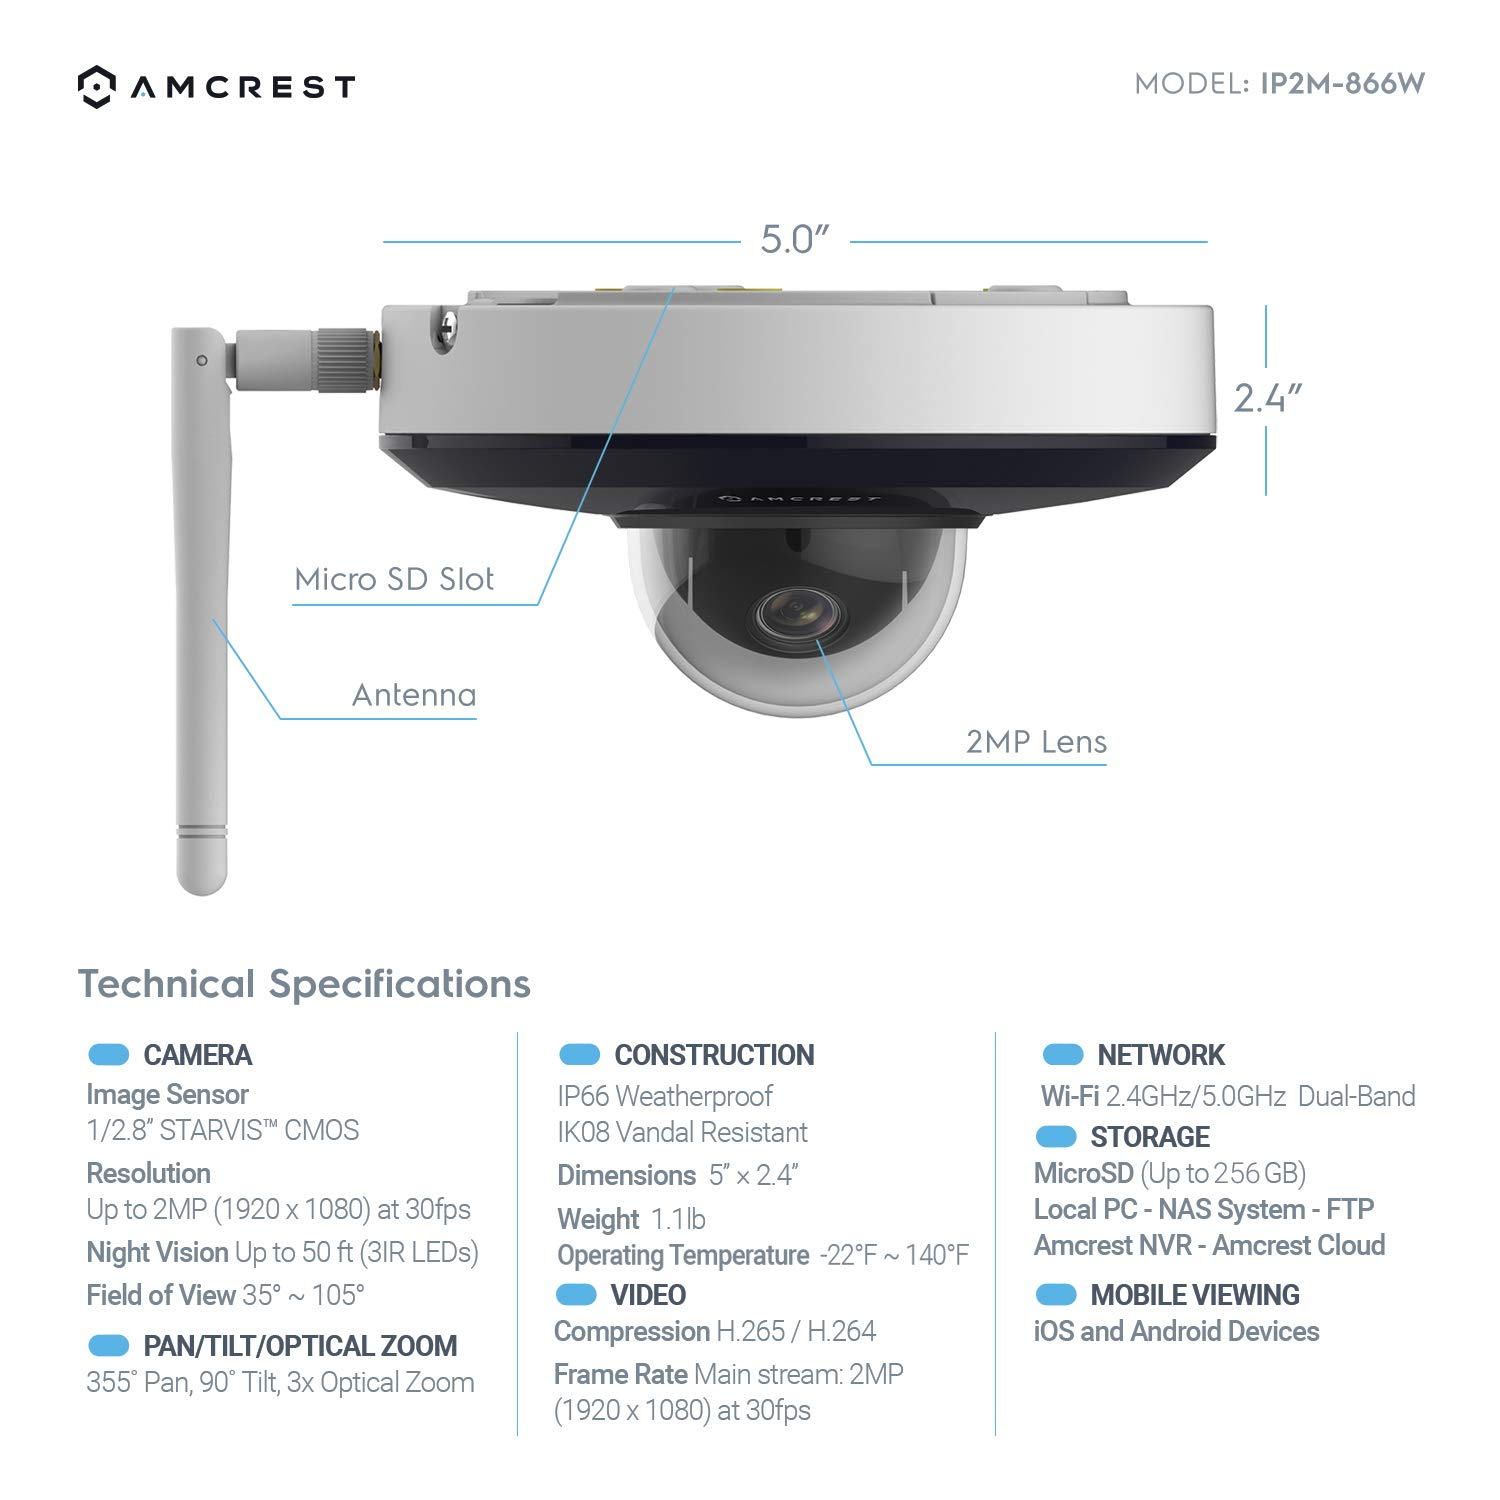 Amcrest ProHD 1080P PTZ WiFi Camera, 2MP Outdoor Vandal Dome IP Camera (3X Optical Zoom) IK08 Vandal-Proof, IP66 Weatherproof, Dual Band 5ghz/2.4ghz, 2019 Updated Firmware, Pan/Tilt IP2M-866W (White) by Amcrest (Image #4)